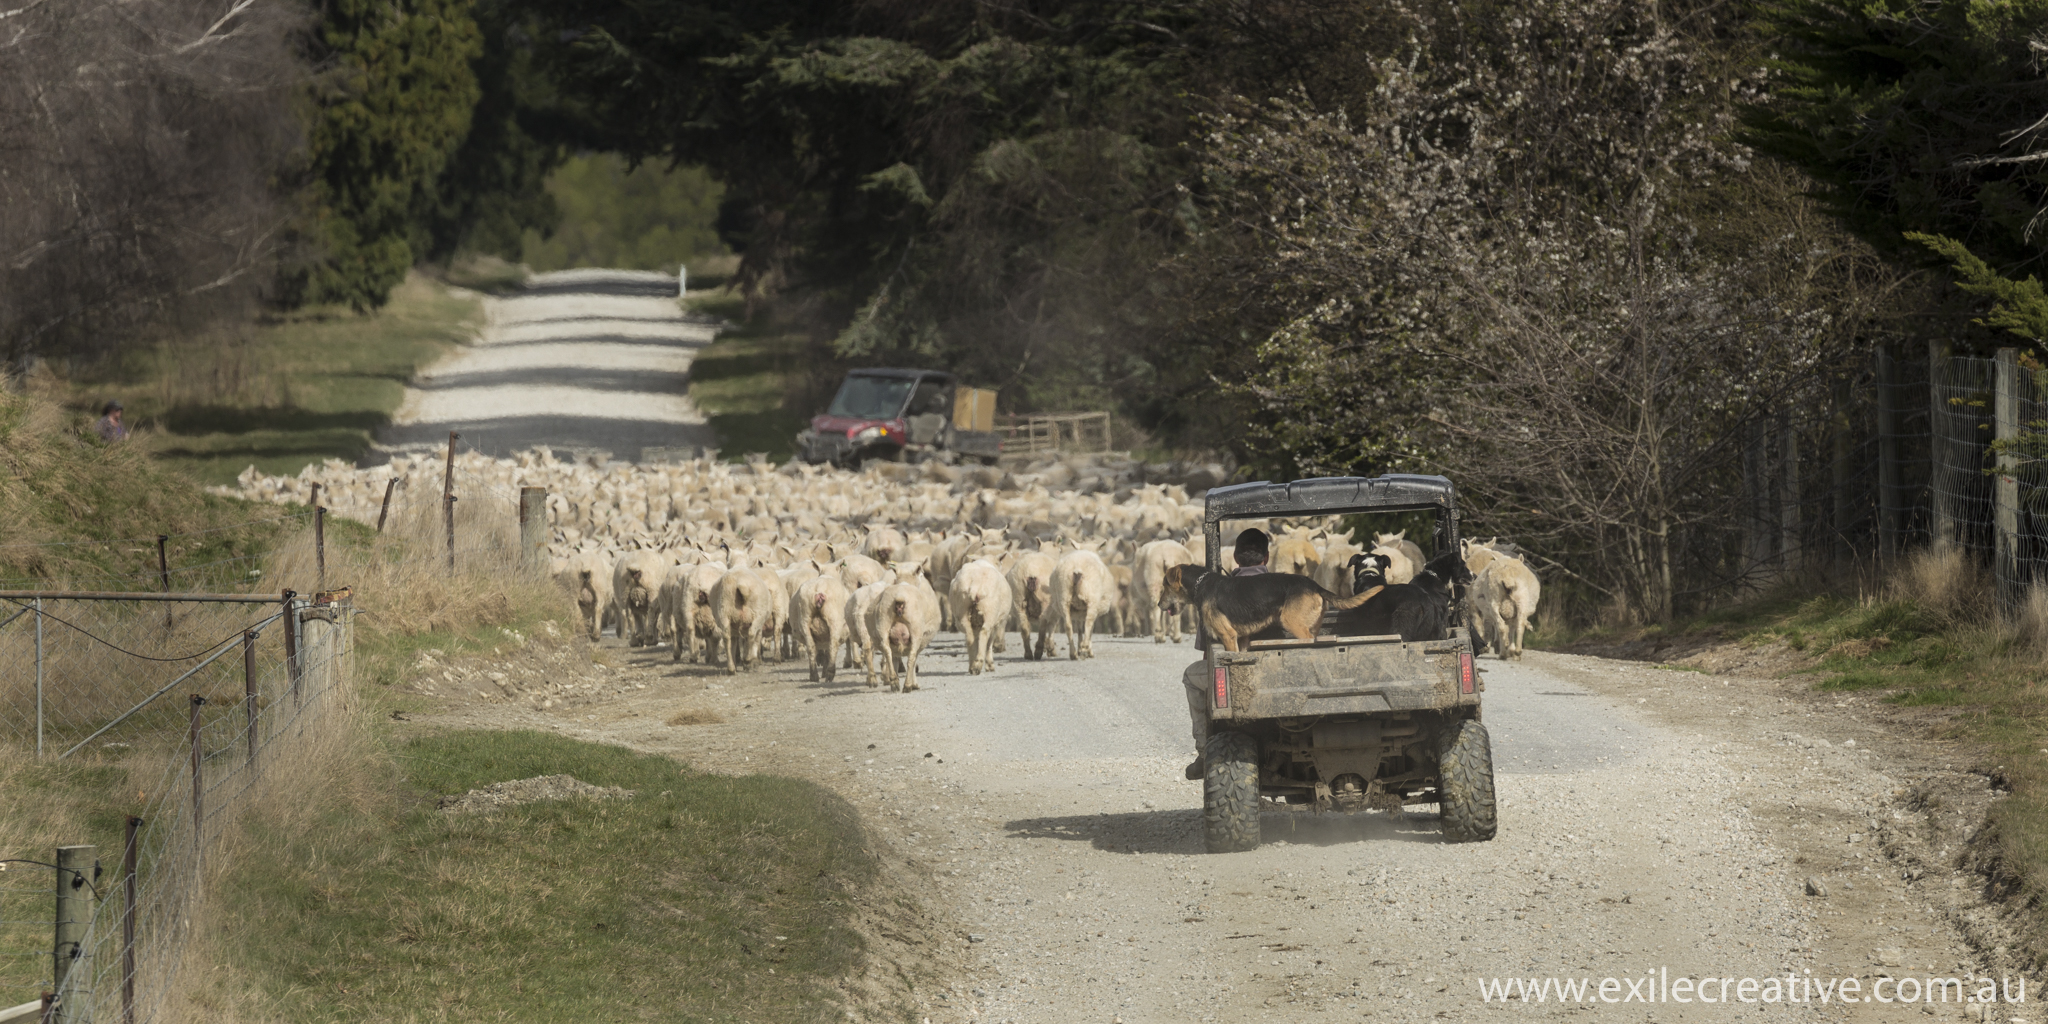 Rush hour on the Glenorchy-Paradise Rd.  Canon 5Dmiii, 100-400L IS ii @ 400mm, ISO200, f/9, 1/400s